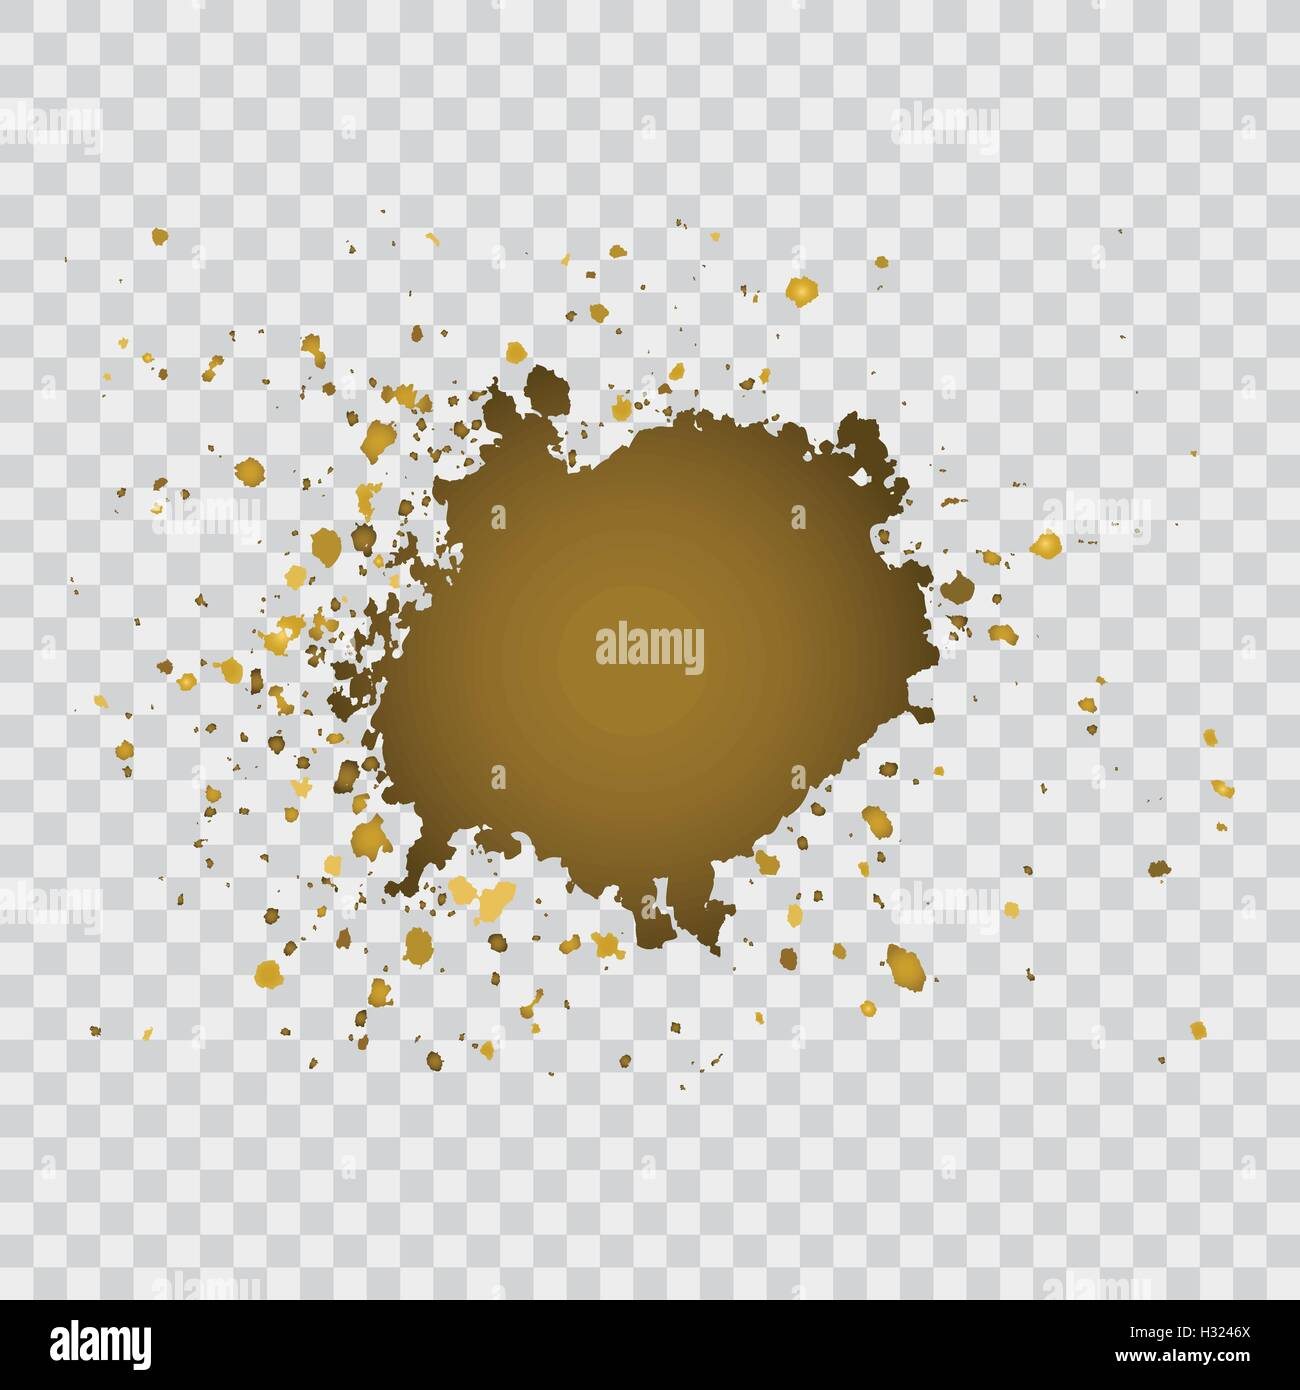 Gold Brush Paint Stroke With Rough Edges On Transparent Gray Background Splash Abstract Frame Vector Illustration